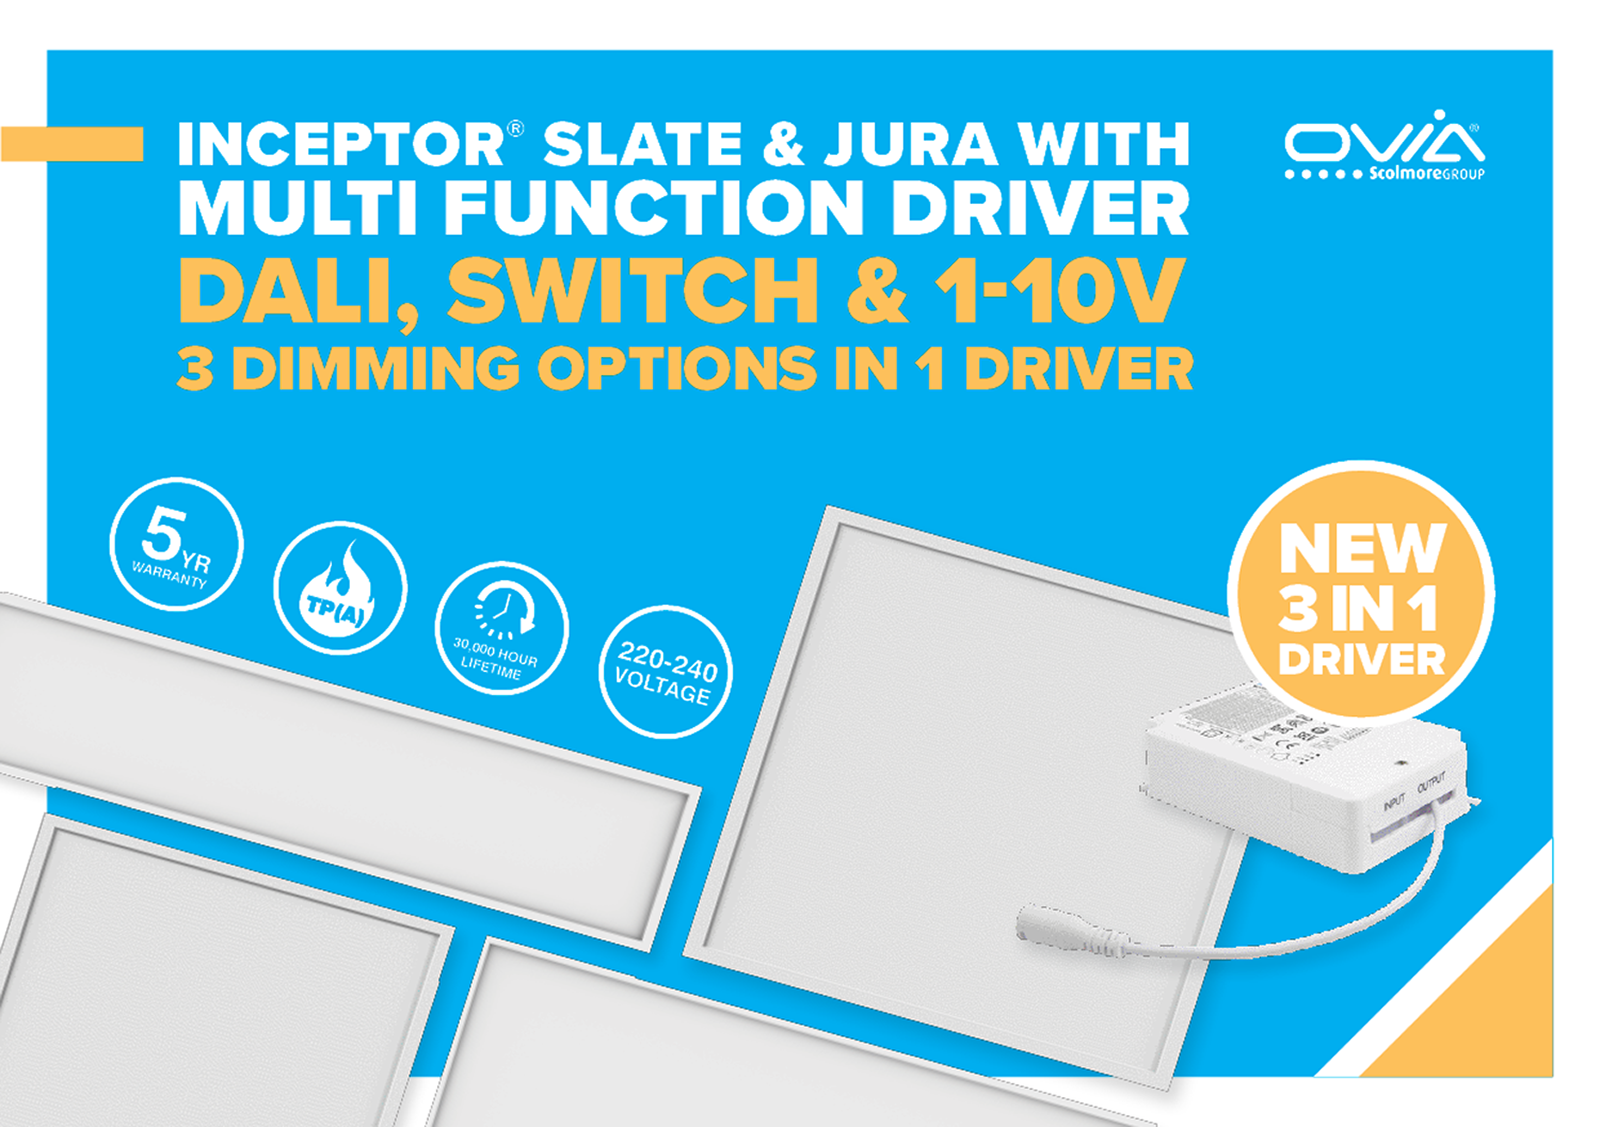 Ovia introduces new Multi-Function Driver